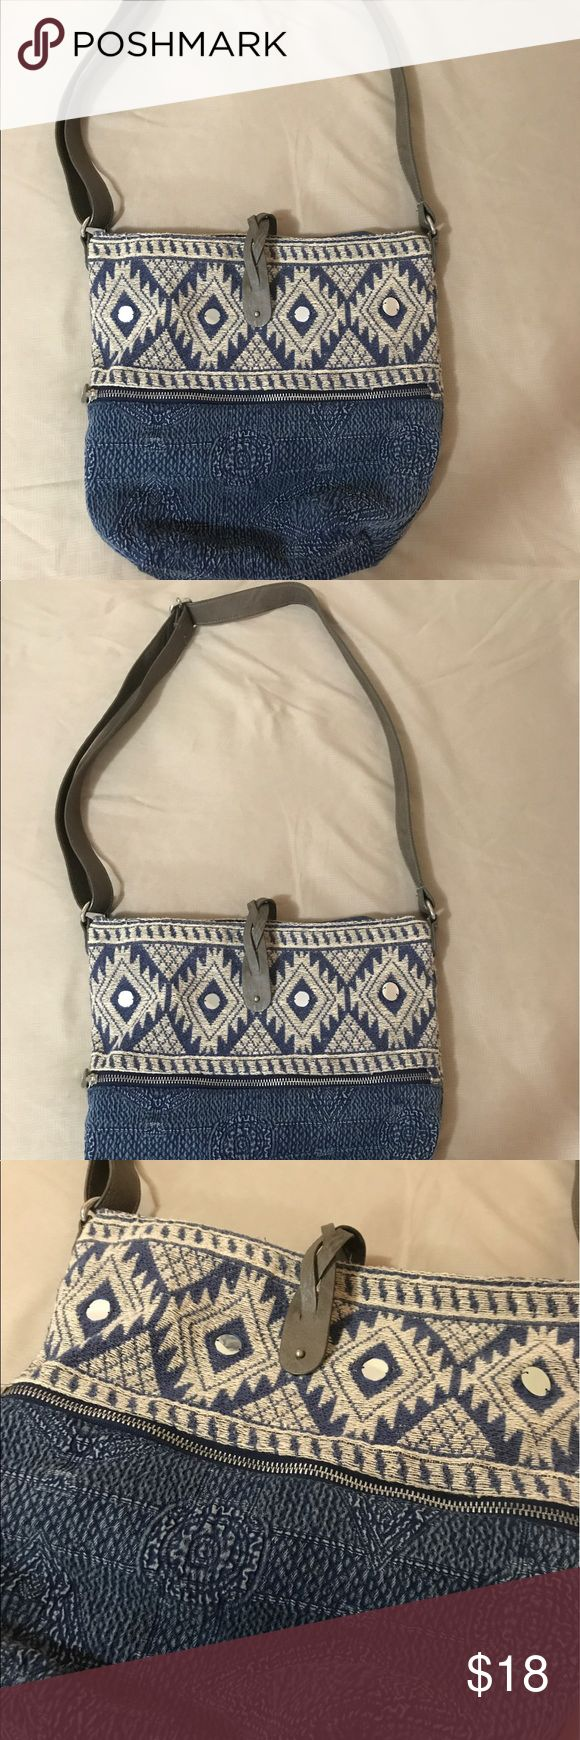 American Eagle Boho purse Used only twice. In perfect condition. Brand: American Eagle American Eagle Outfitters Bags Shoulder Bags